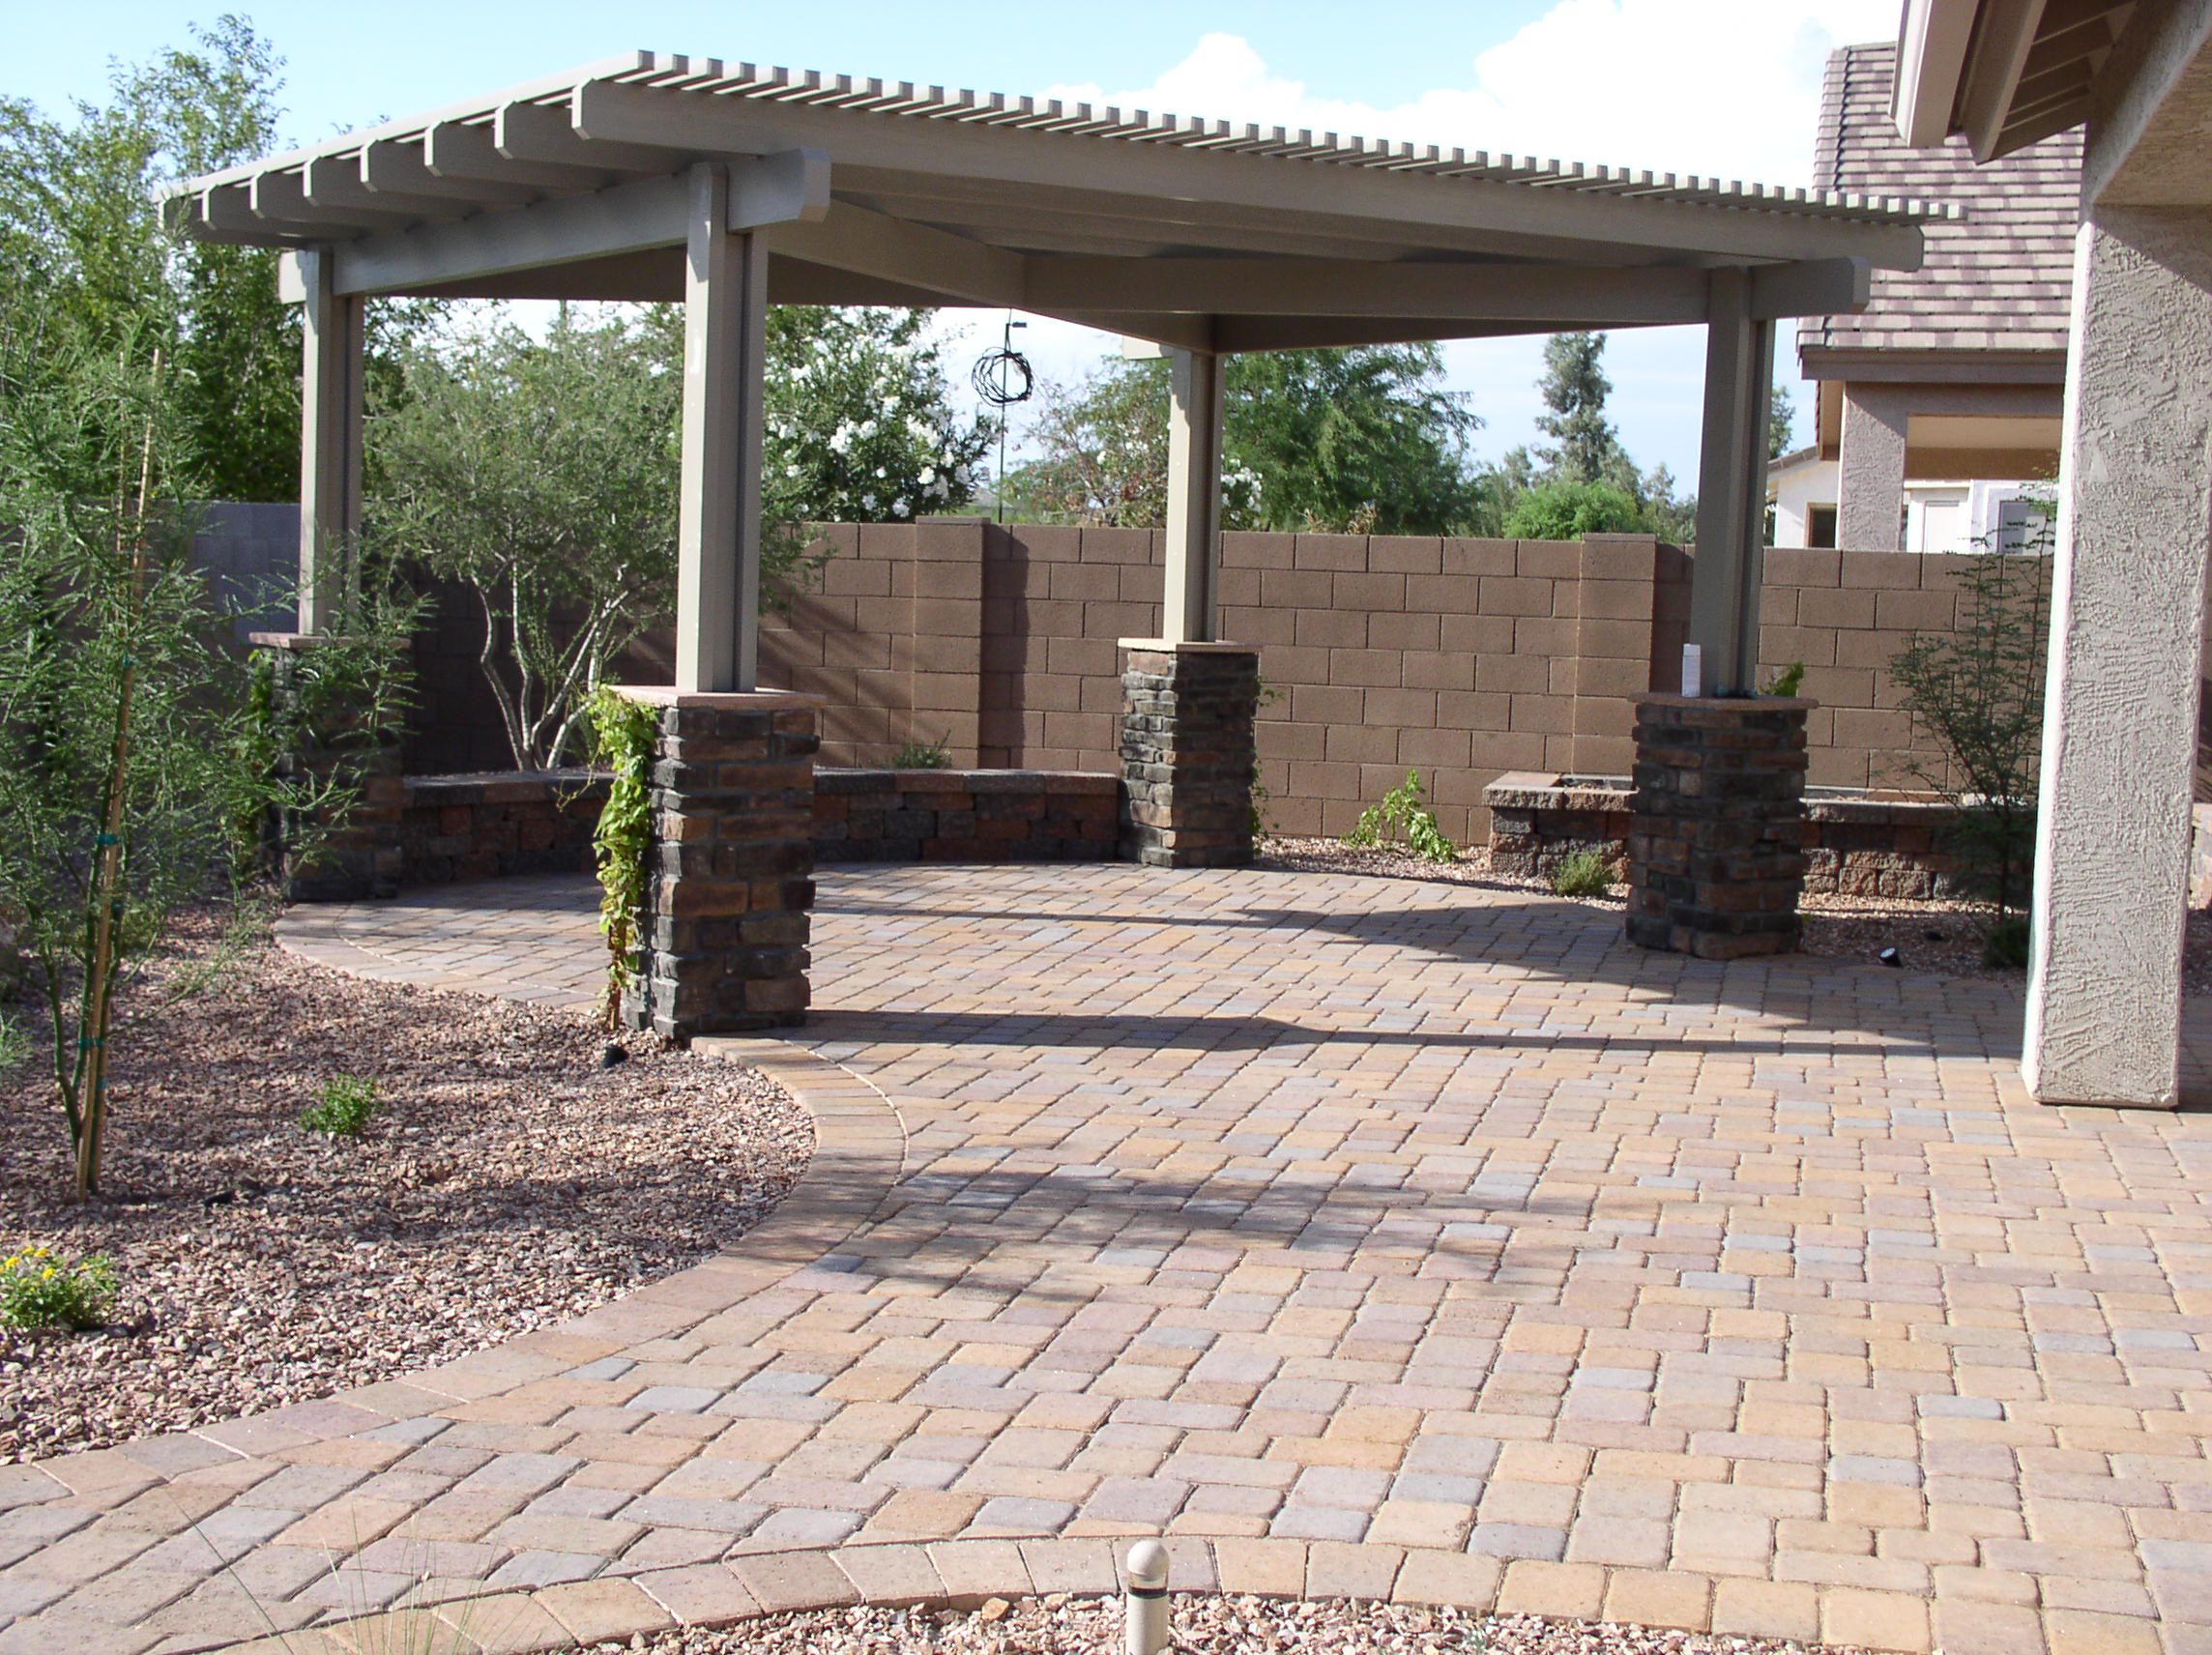 Paver designs and paver ideas for your backyard patios - Paver designs for backyard ...